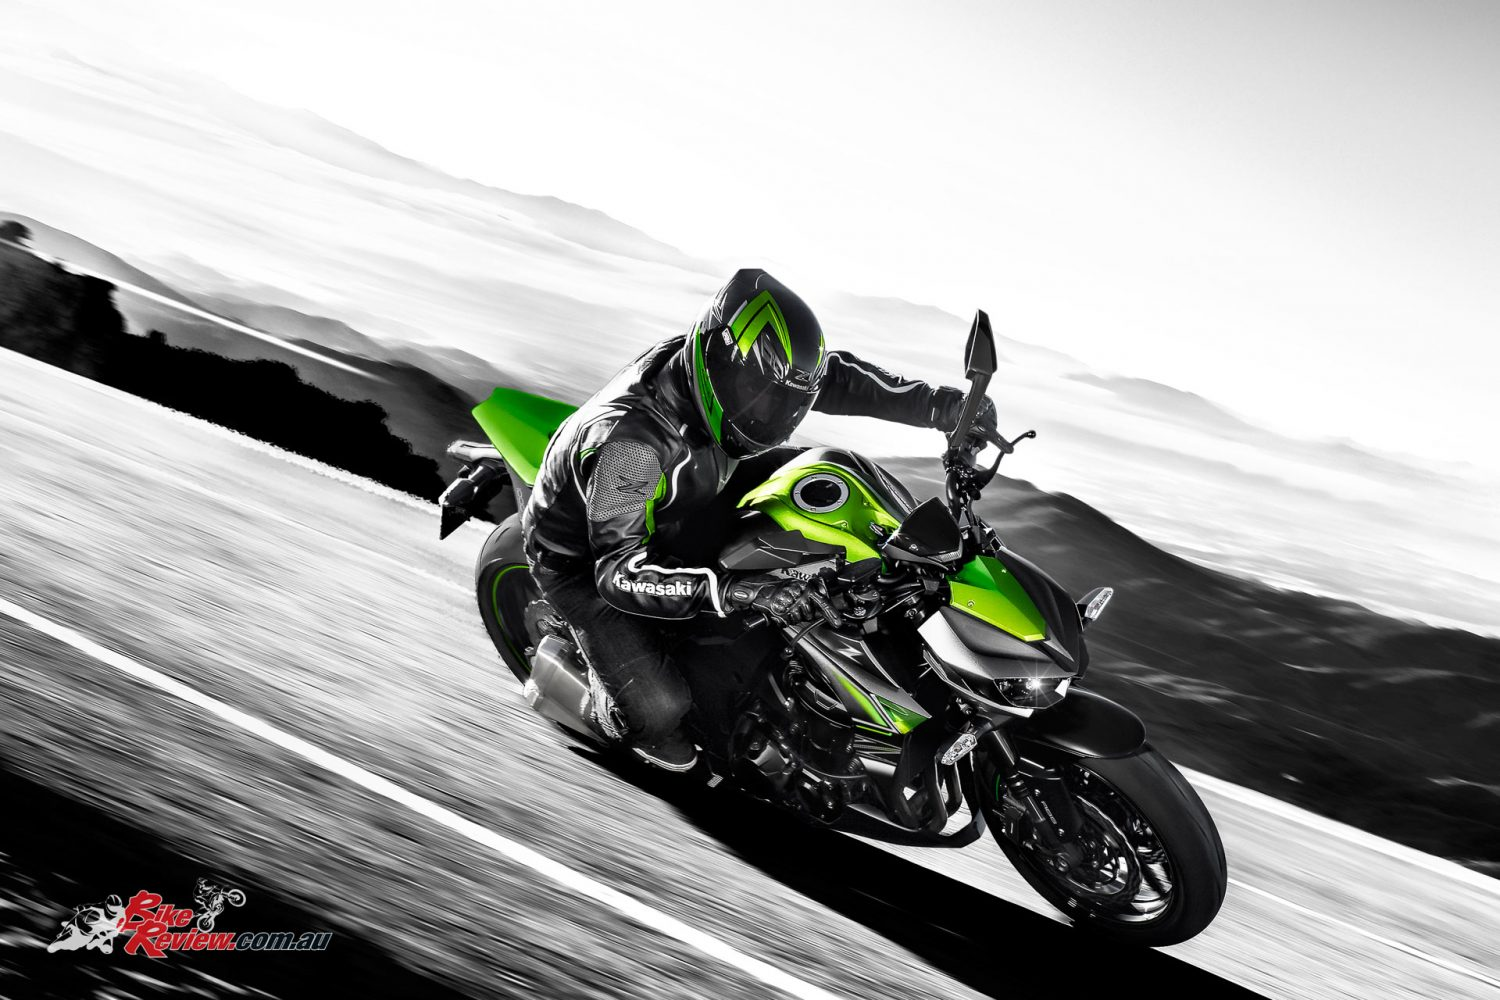 2017 Kawasaki Z1000 available in dealers - Bike Review